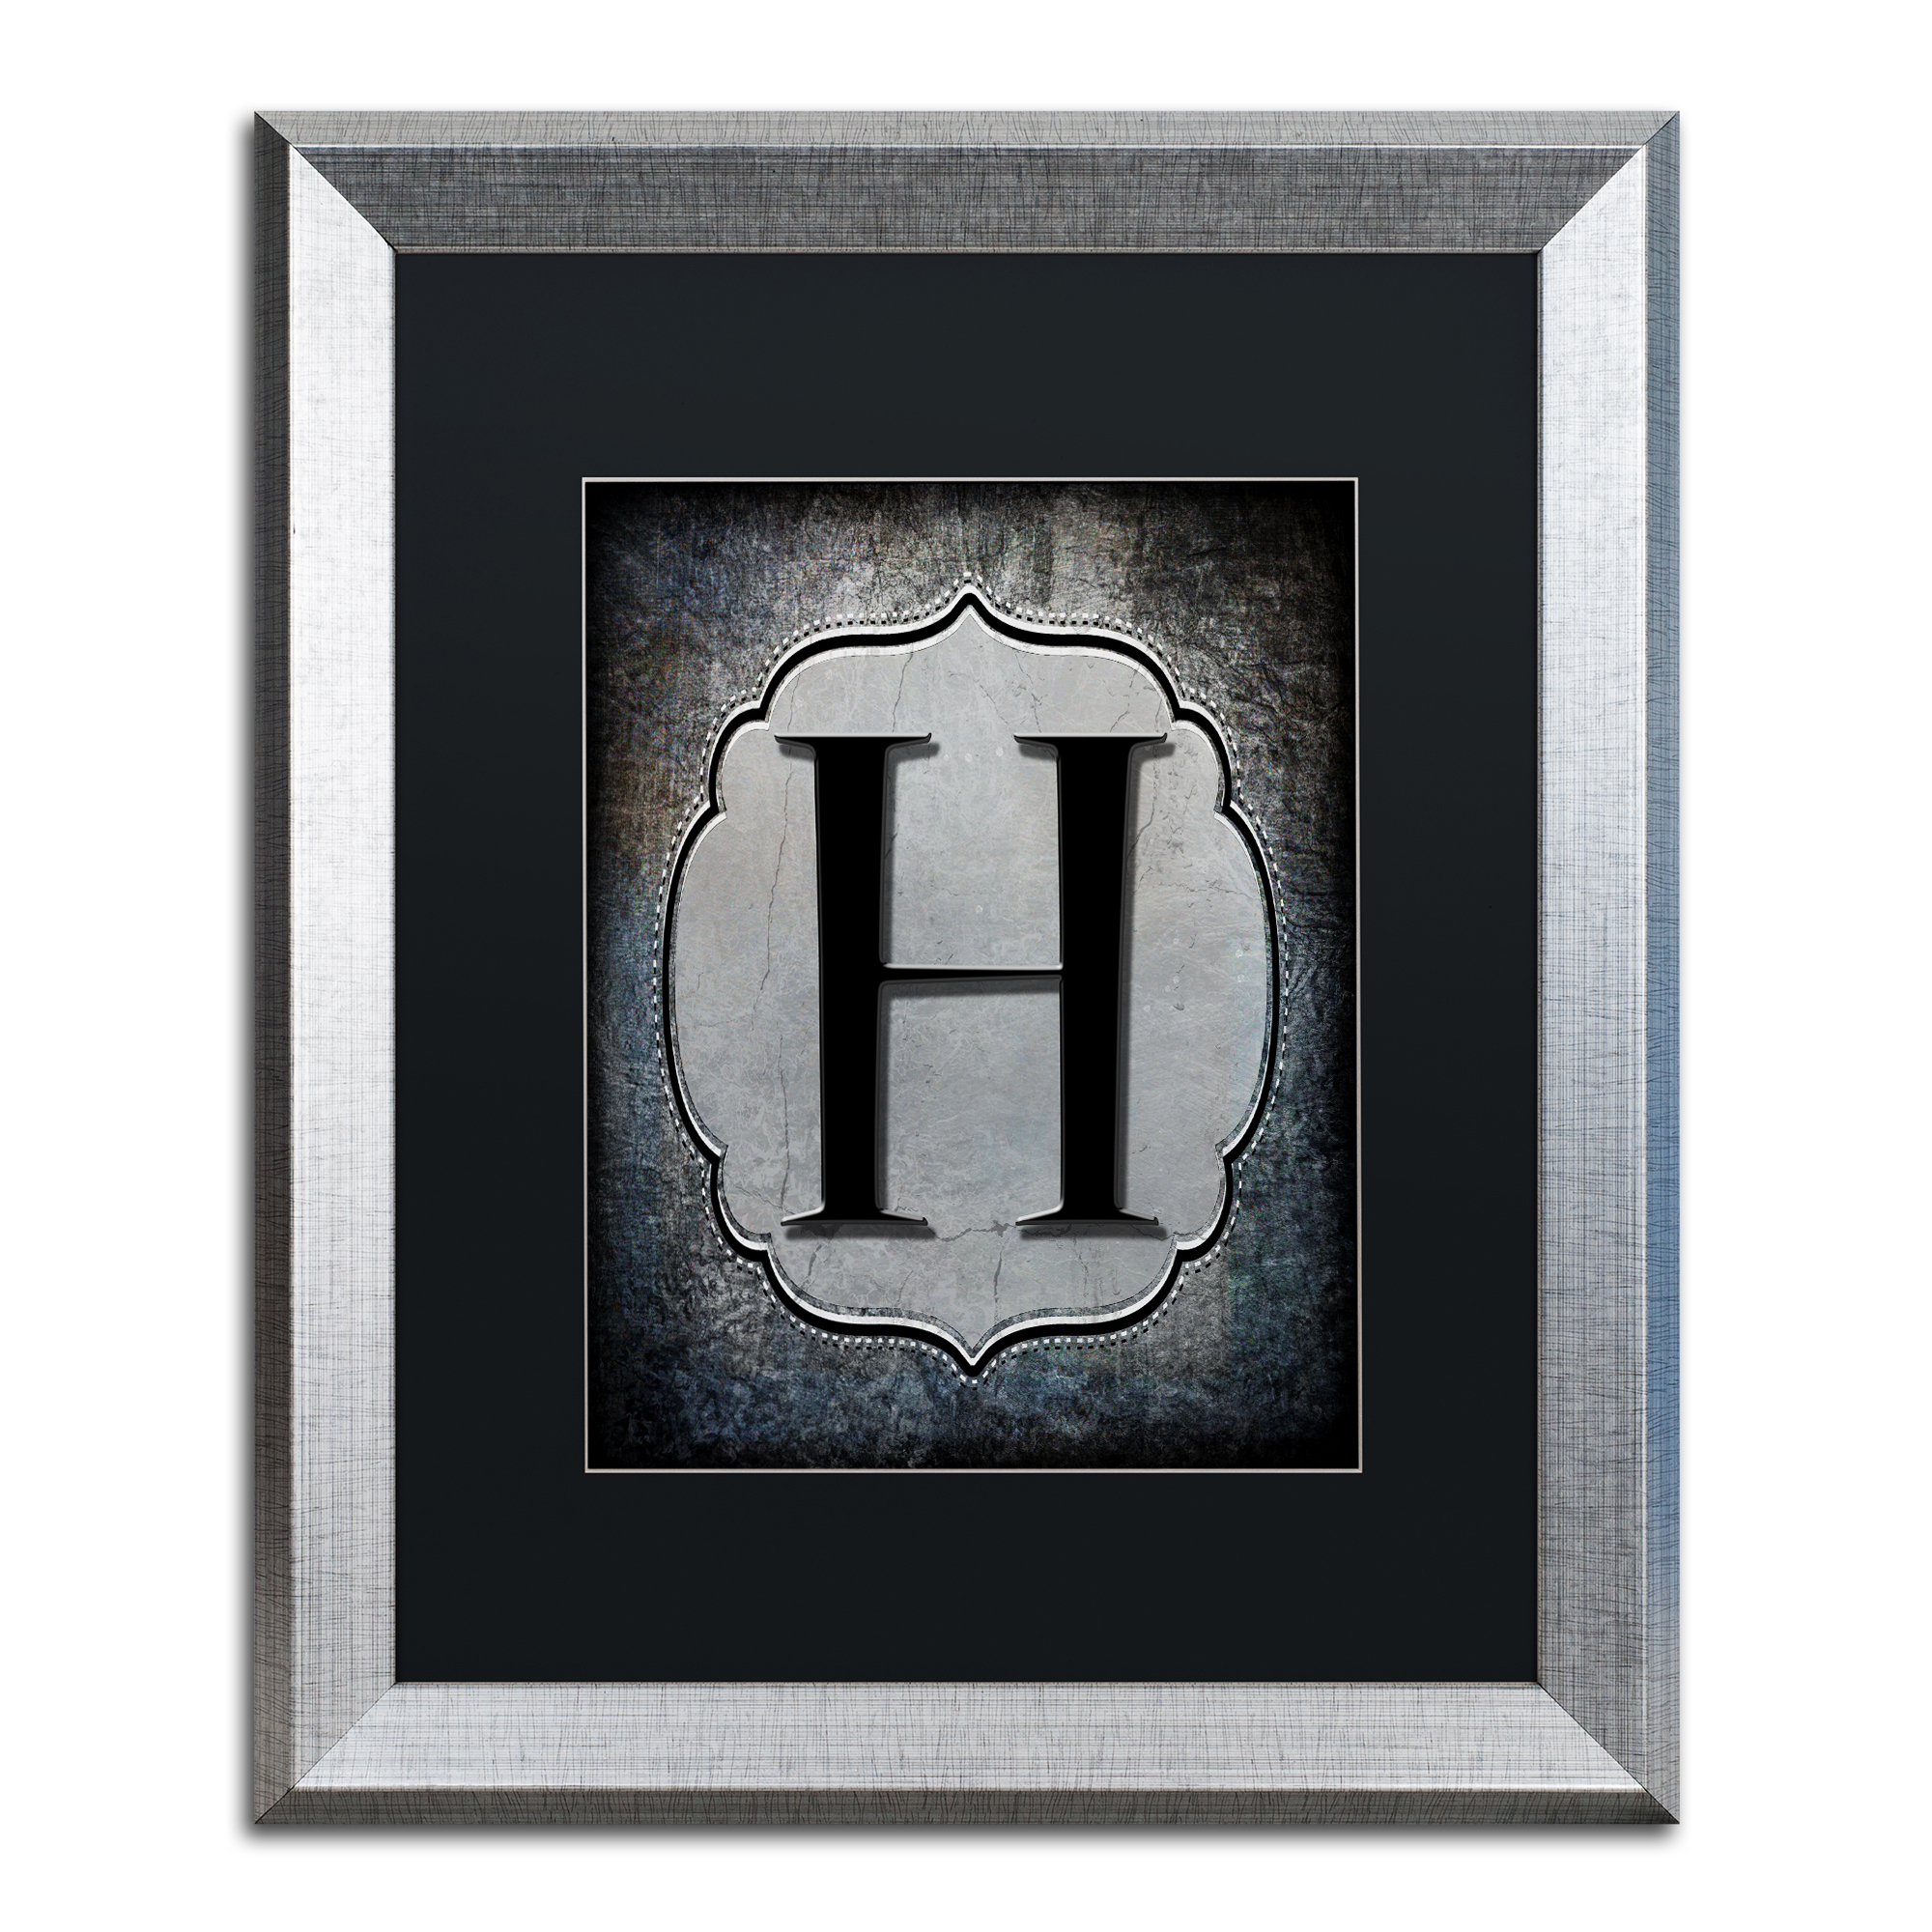 Trademark Fine Art 'Letter H' Black Matte, Silver Framed Artwork by LightBoxJournal by Trademark Global